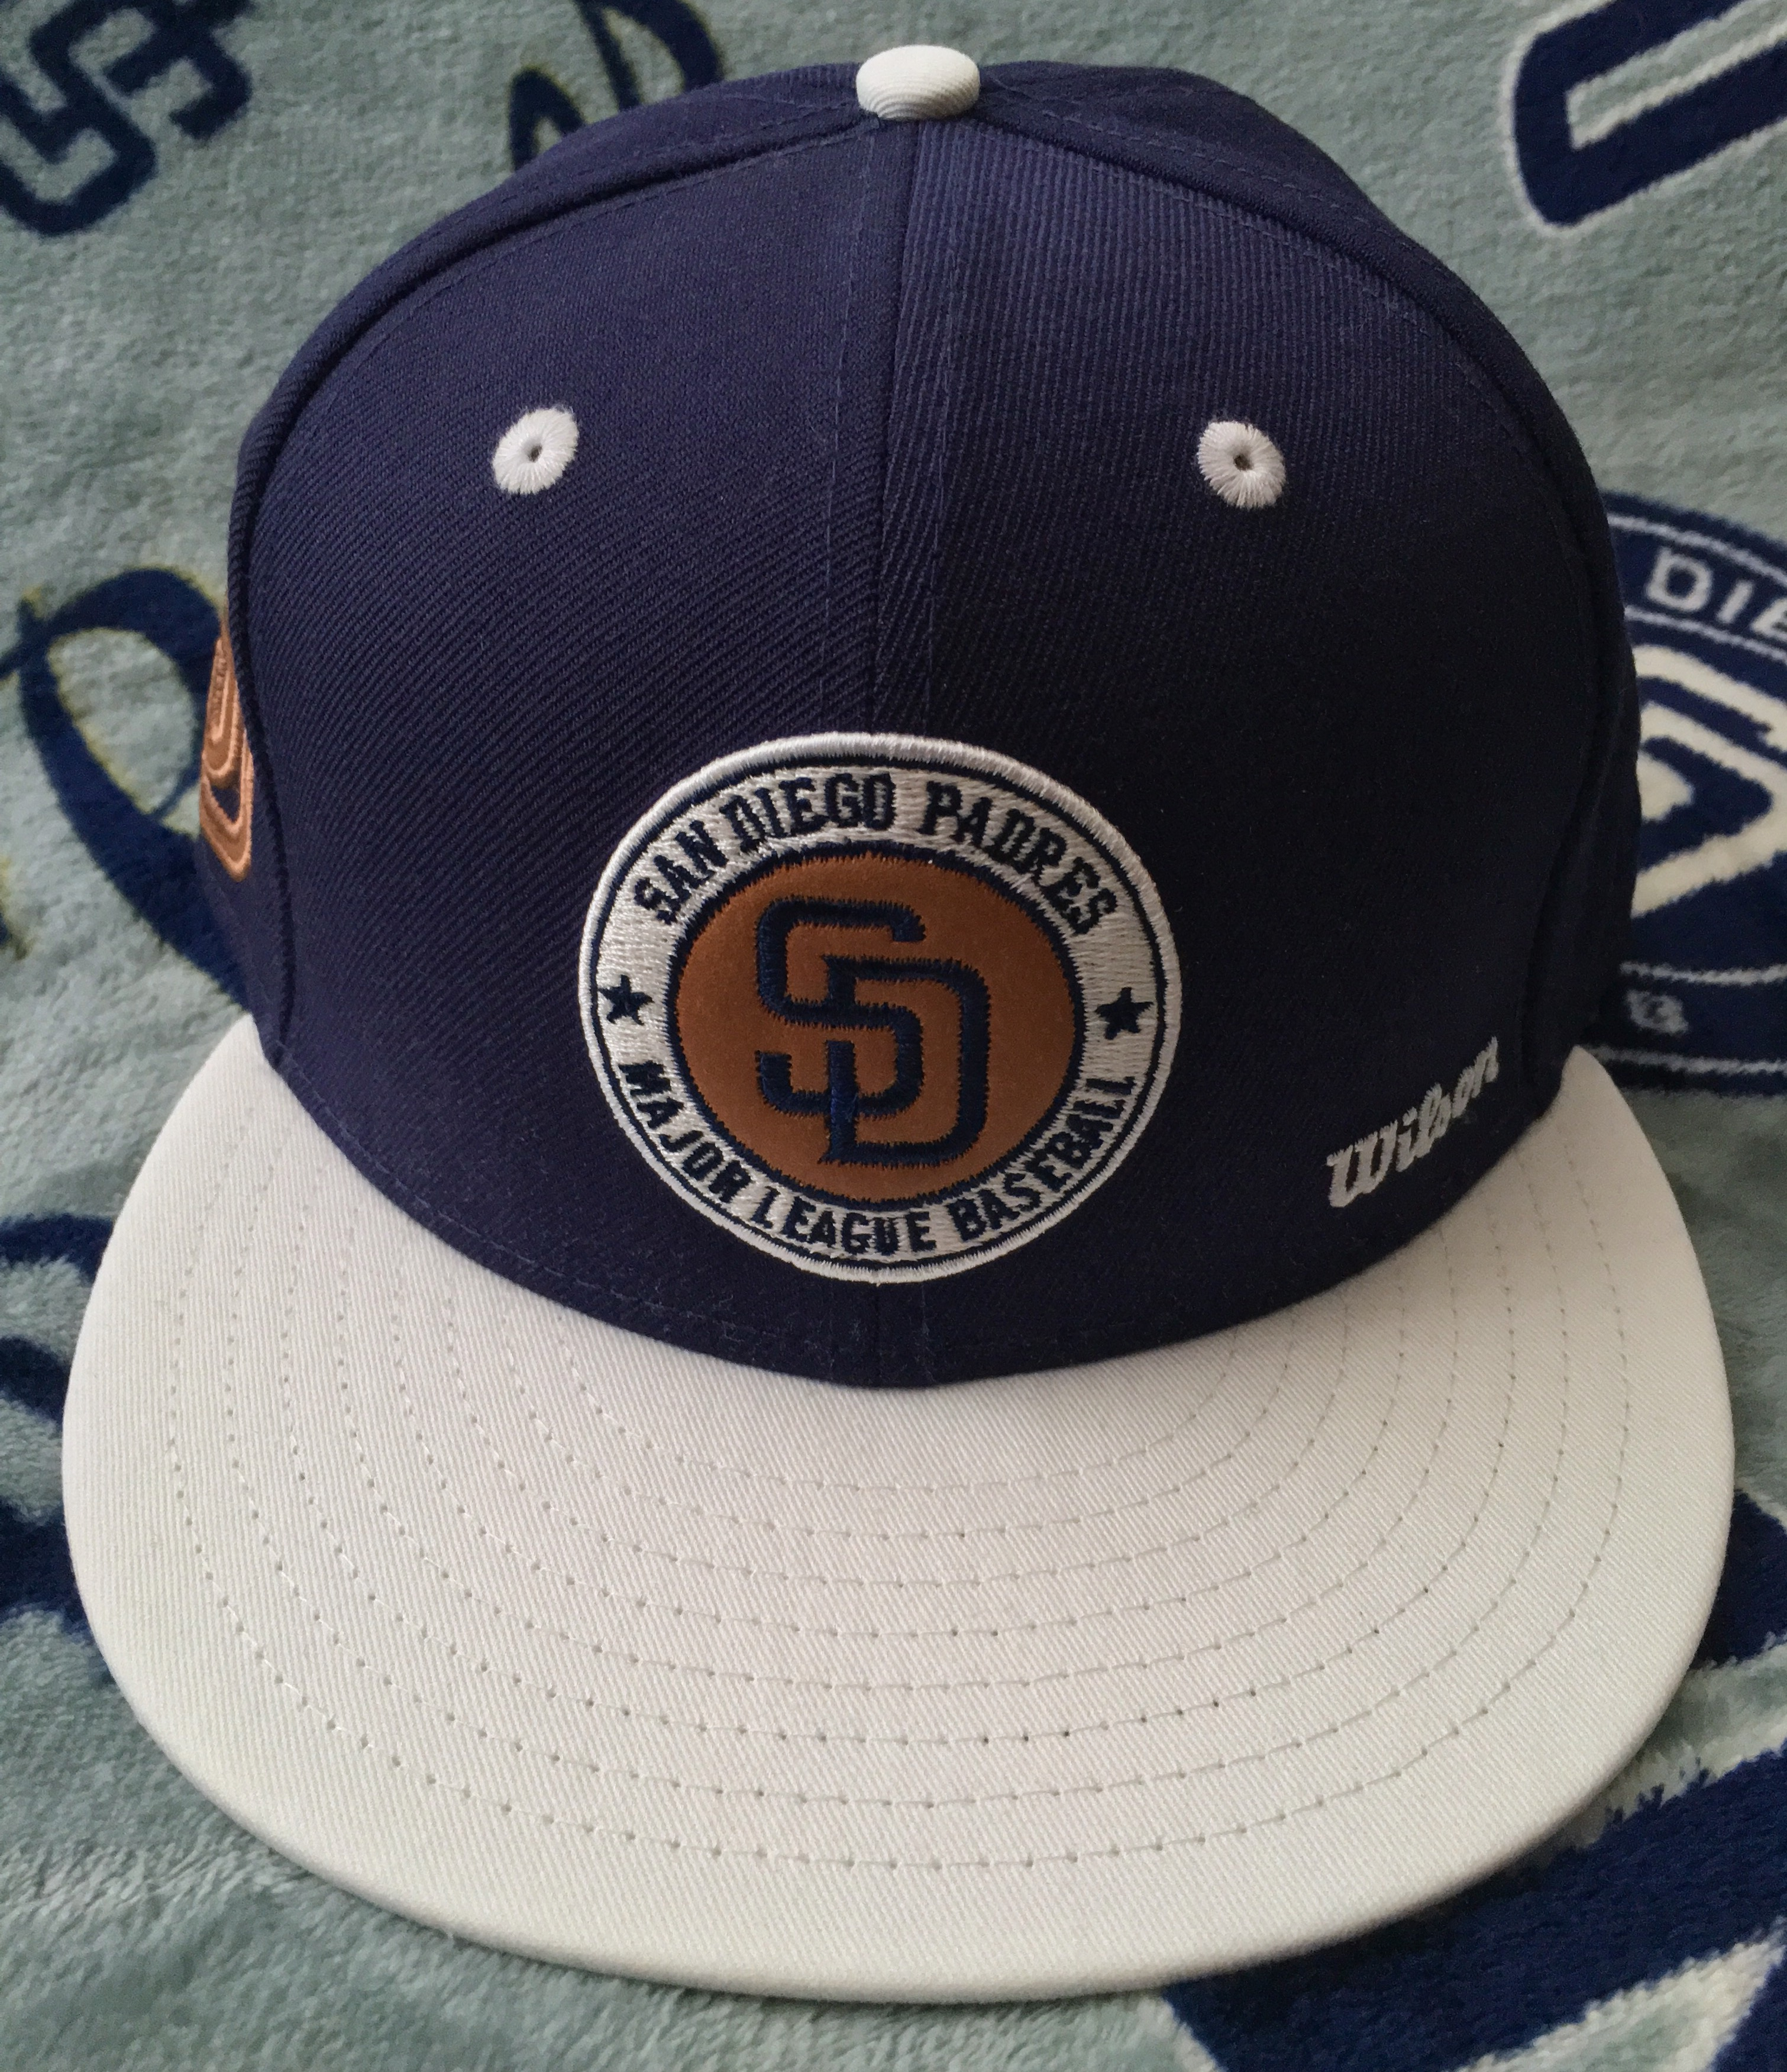 ae51ea8f89a The second of the New Era x Wilson caps is a team colorway-inspired version  with touches of genuine leather throughout. While this cap is a nice  looking ...